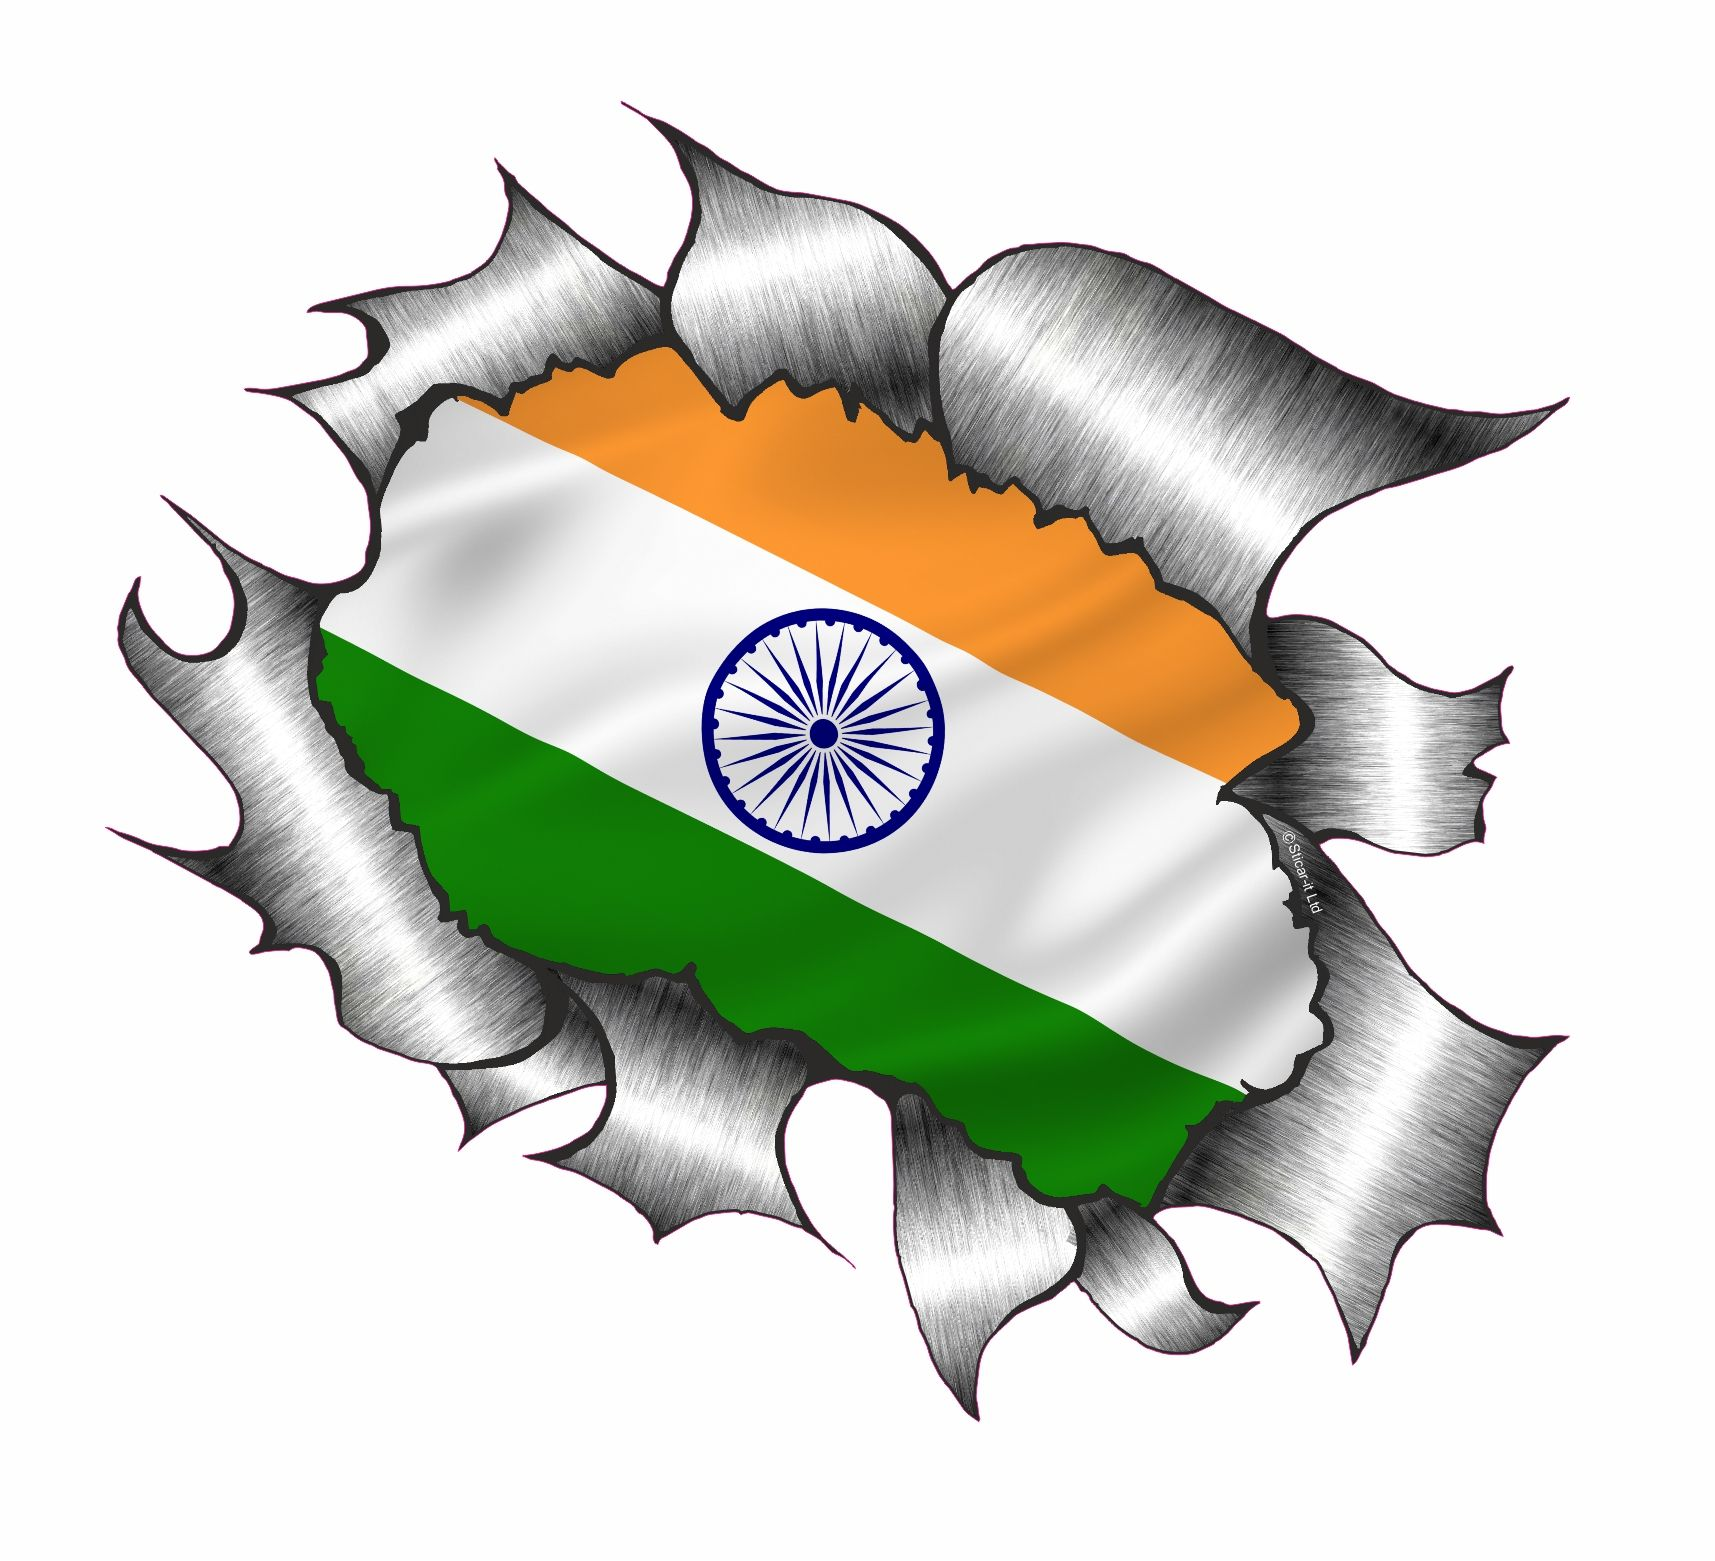 Car sticker design in india - Car Stickers Design India Ripped Torn Metal Design With India Indian Flag Motif External Vinyl